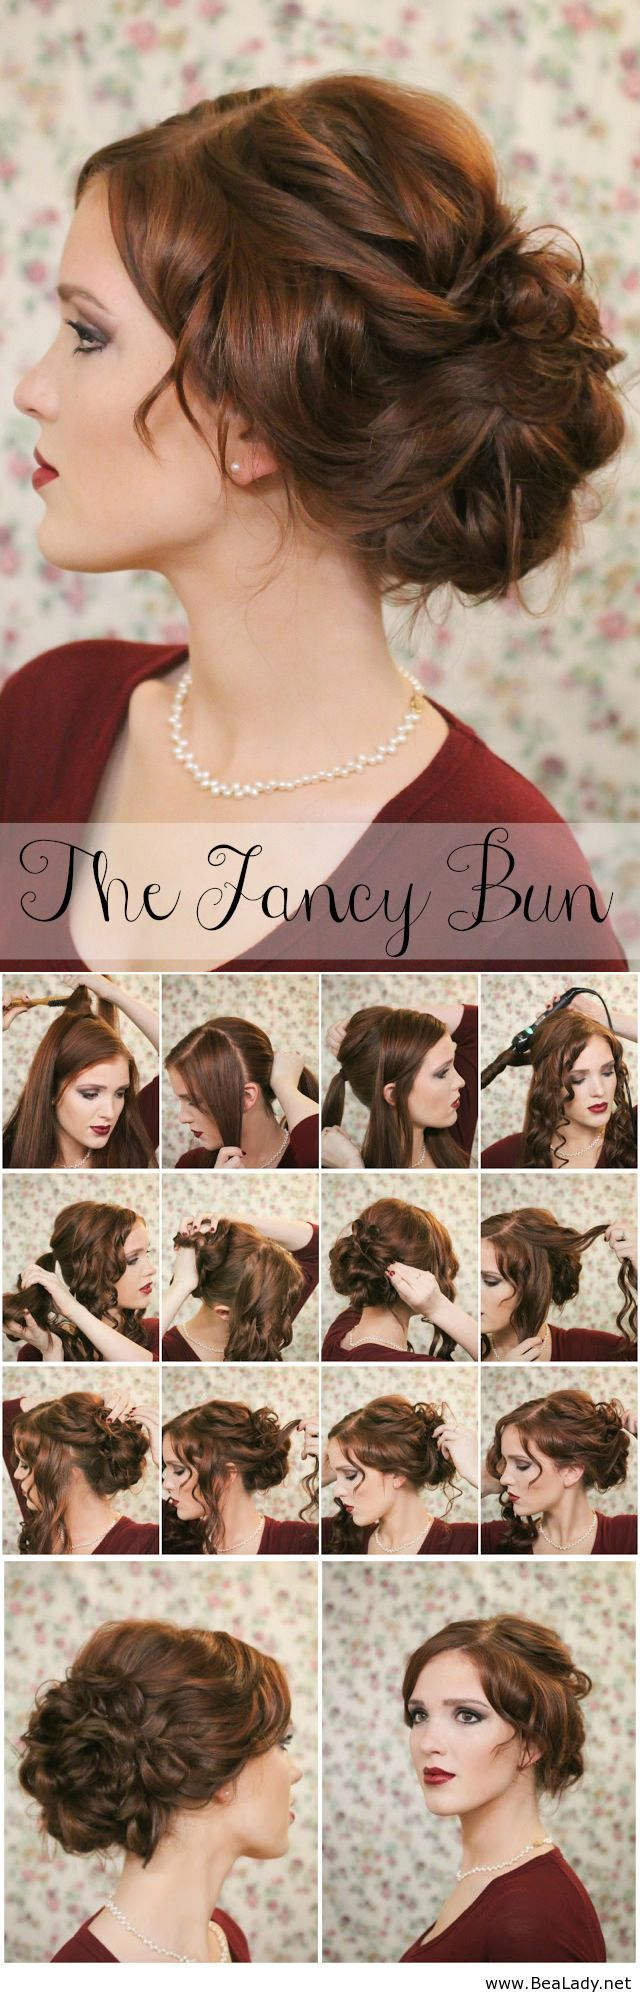 Fancy Bun, wish i could have seen this before my Prom